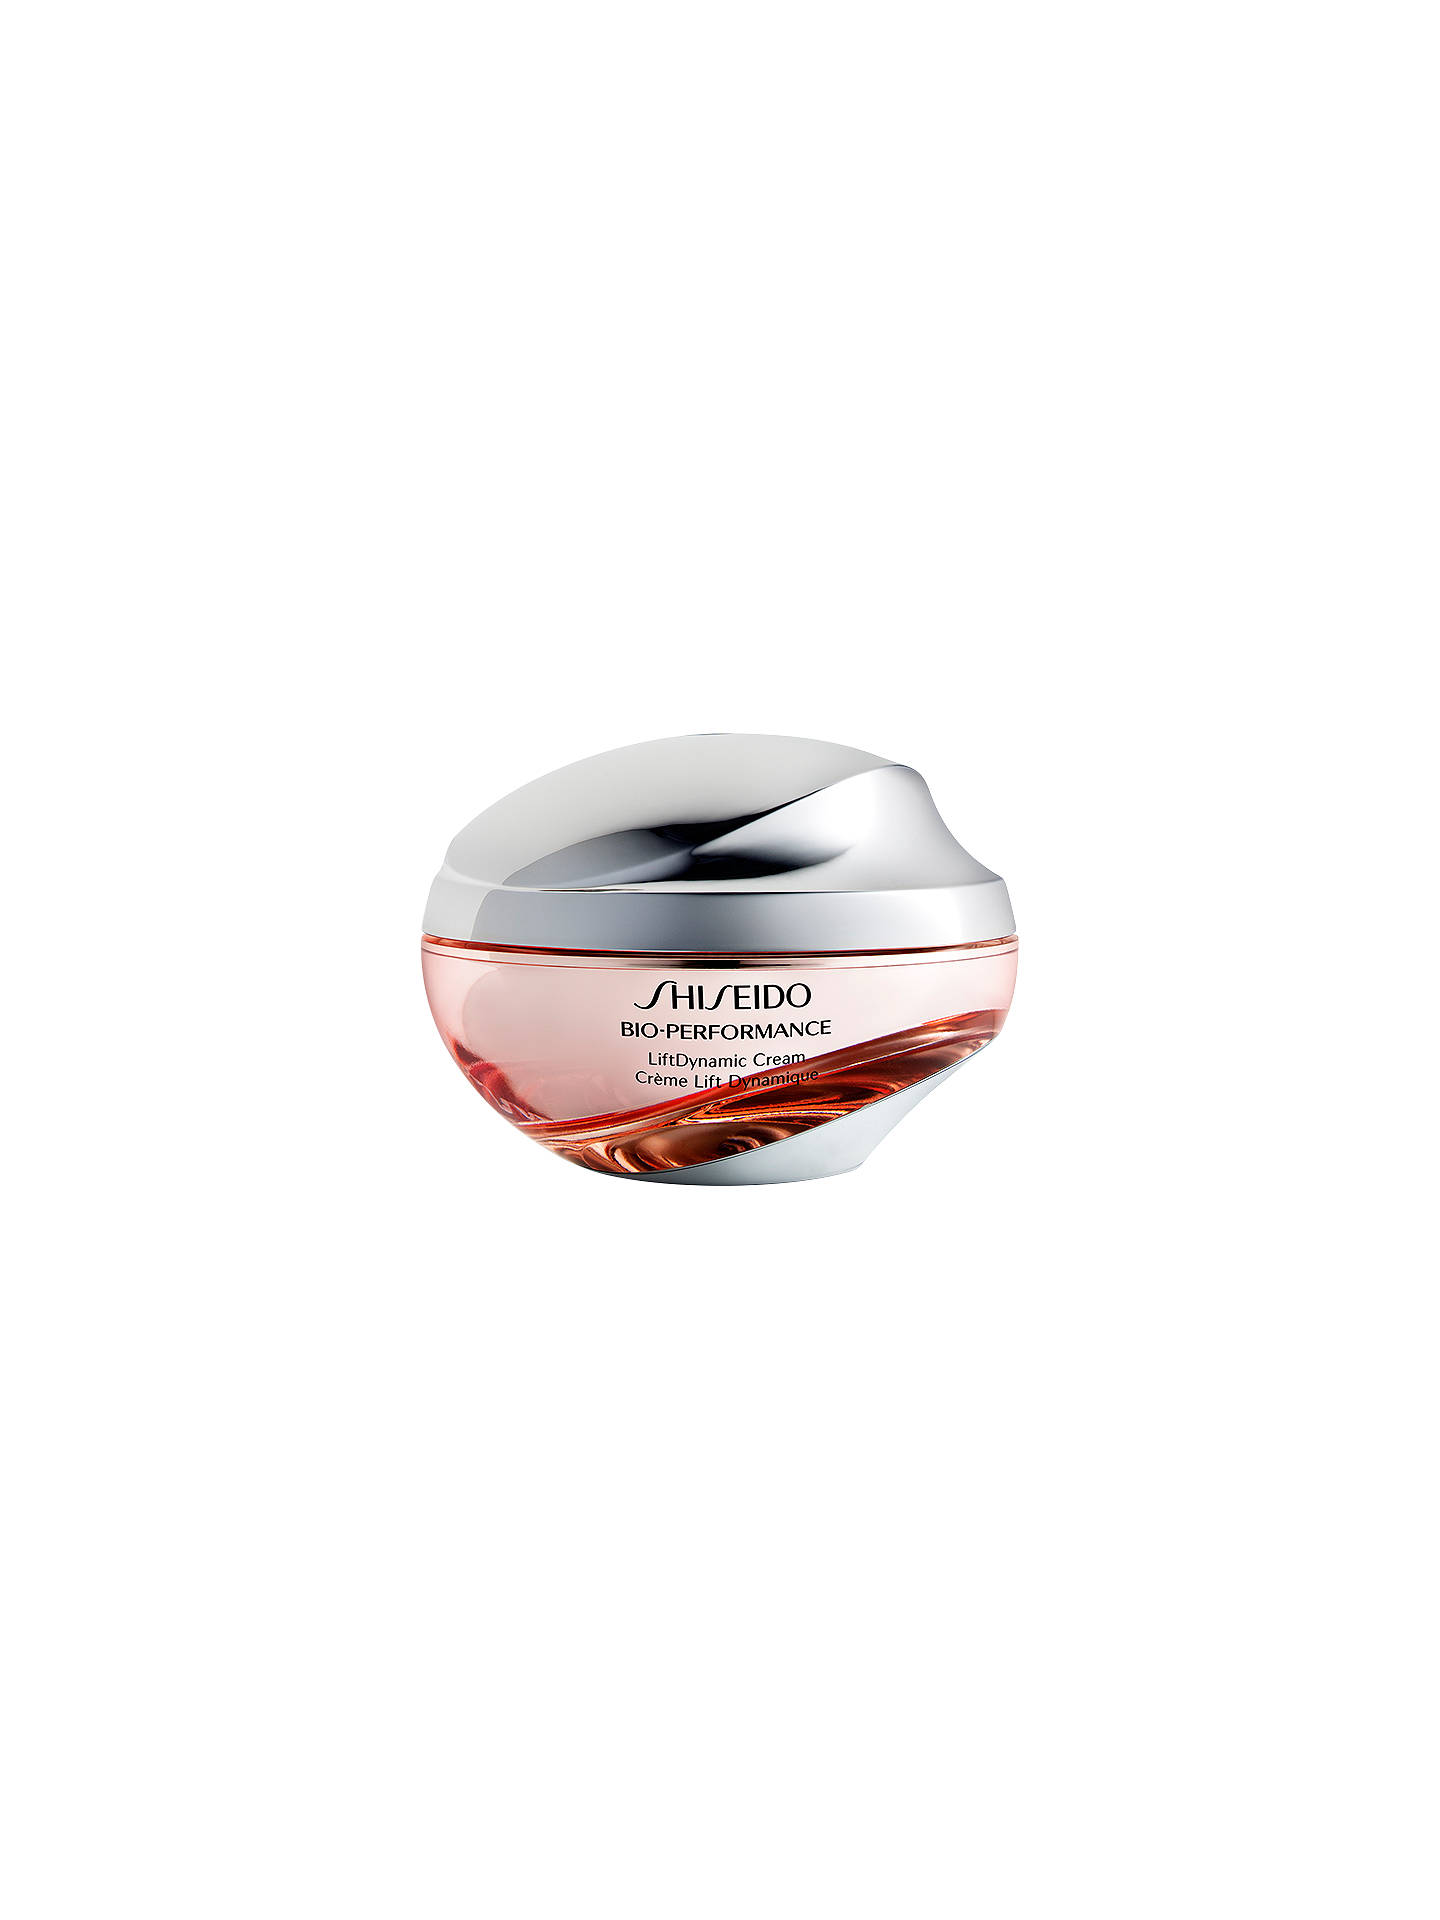 BuyShiseido Bio-Performance LiftDynamic Cream, 50ml Online at johnlewis.com